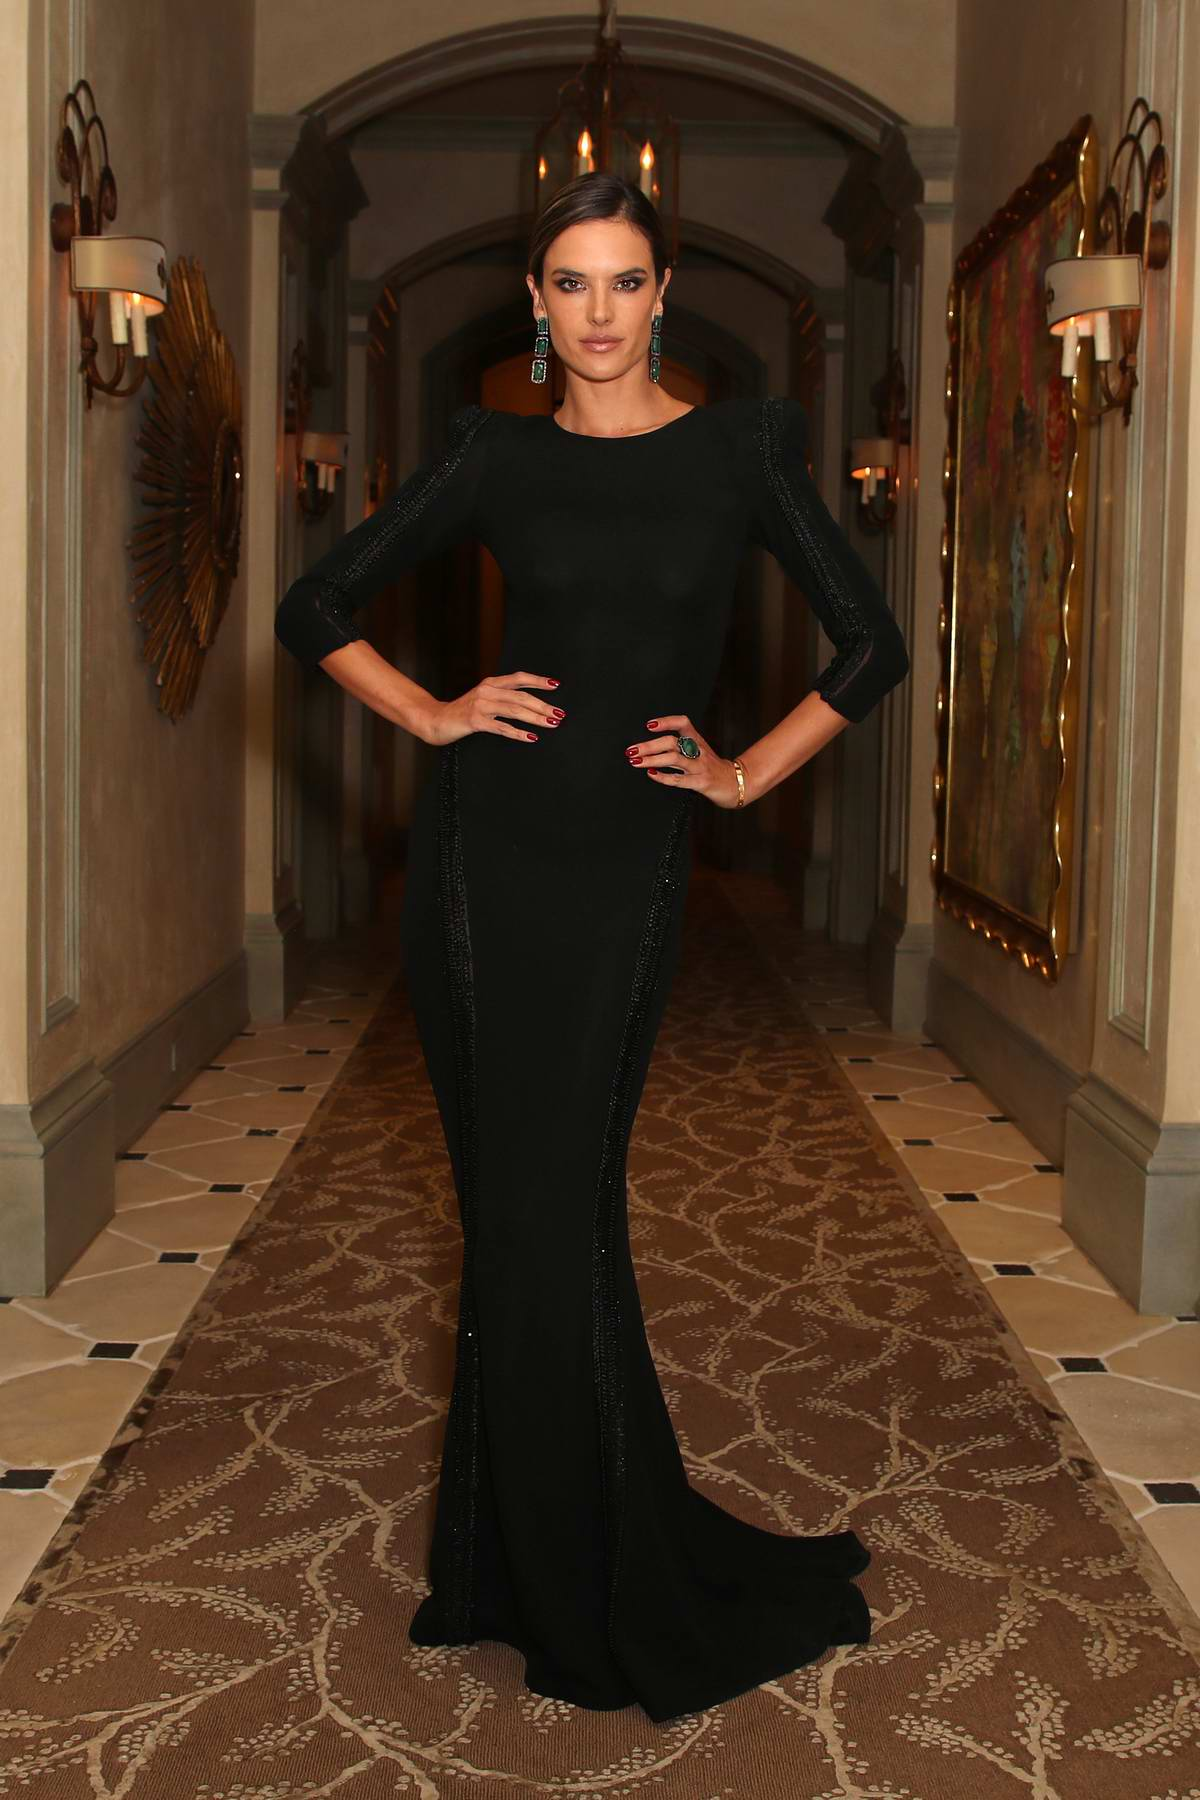 Alessandra Ambrosio attends The Winter Gala in Los Angeles